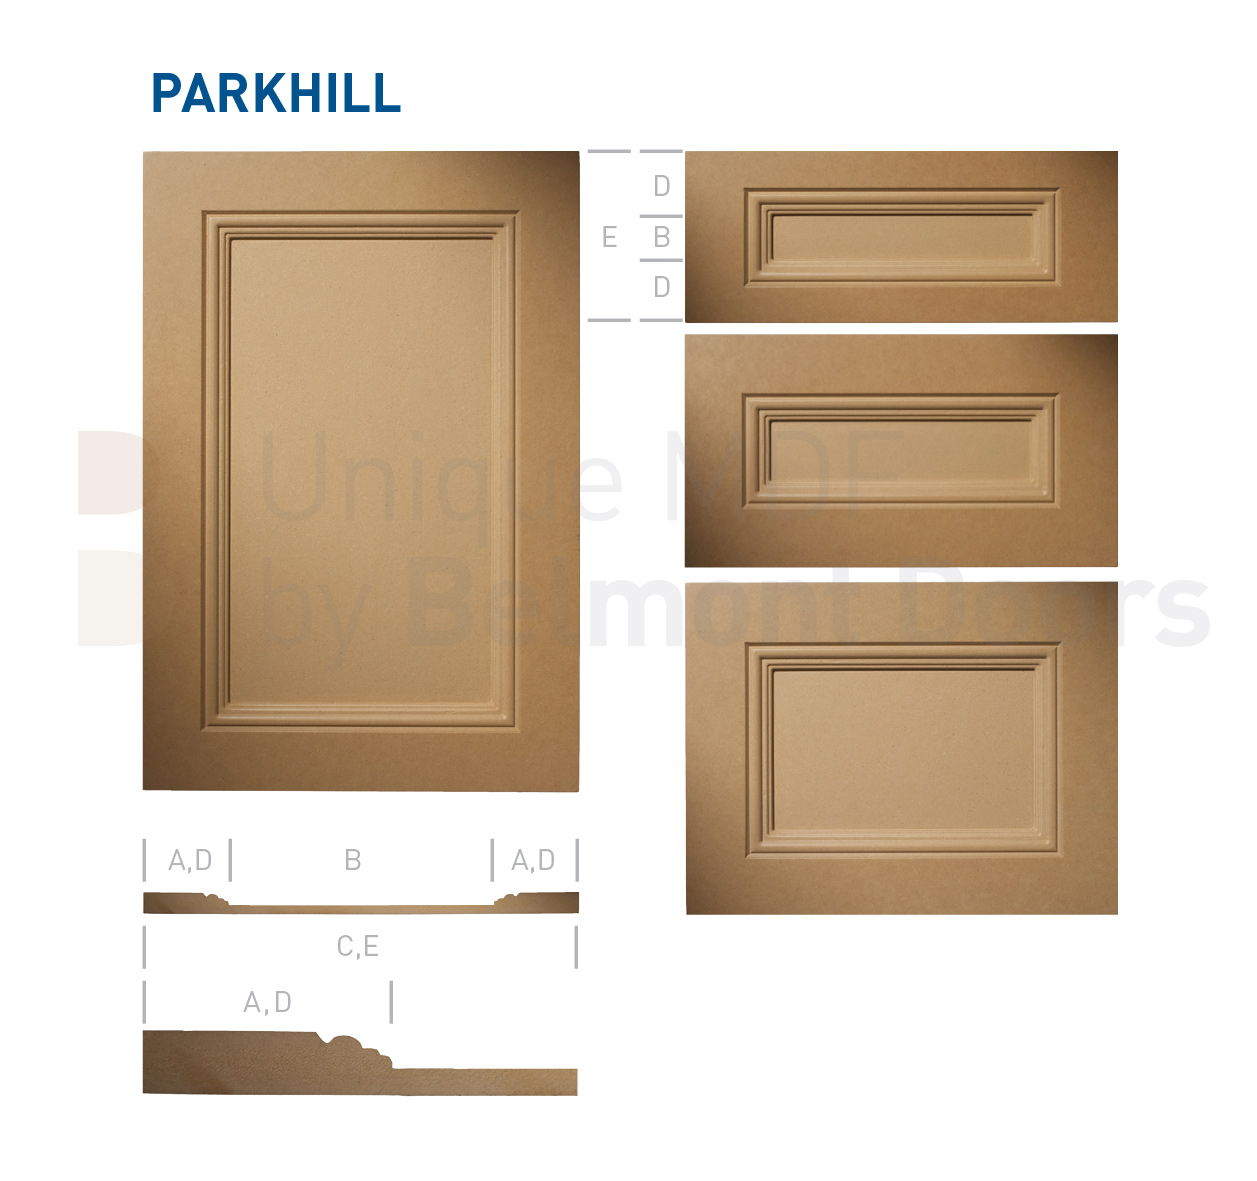 Parkhill-traditional-MDF-Doors-Flat Panel Kitchen Cabinet Doors Drawers by BelmontDoors.com-master-x1257